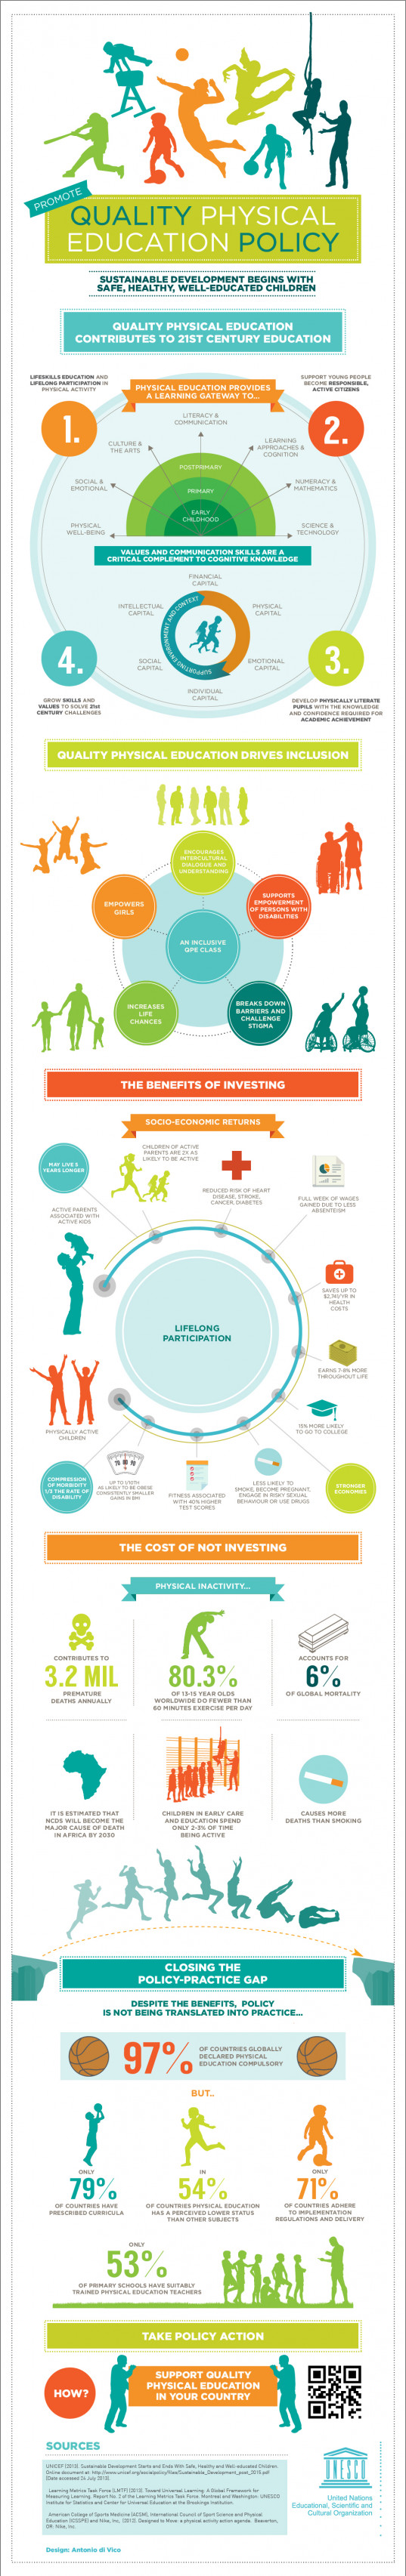 Quality physical education policy